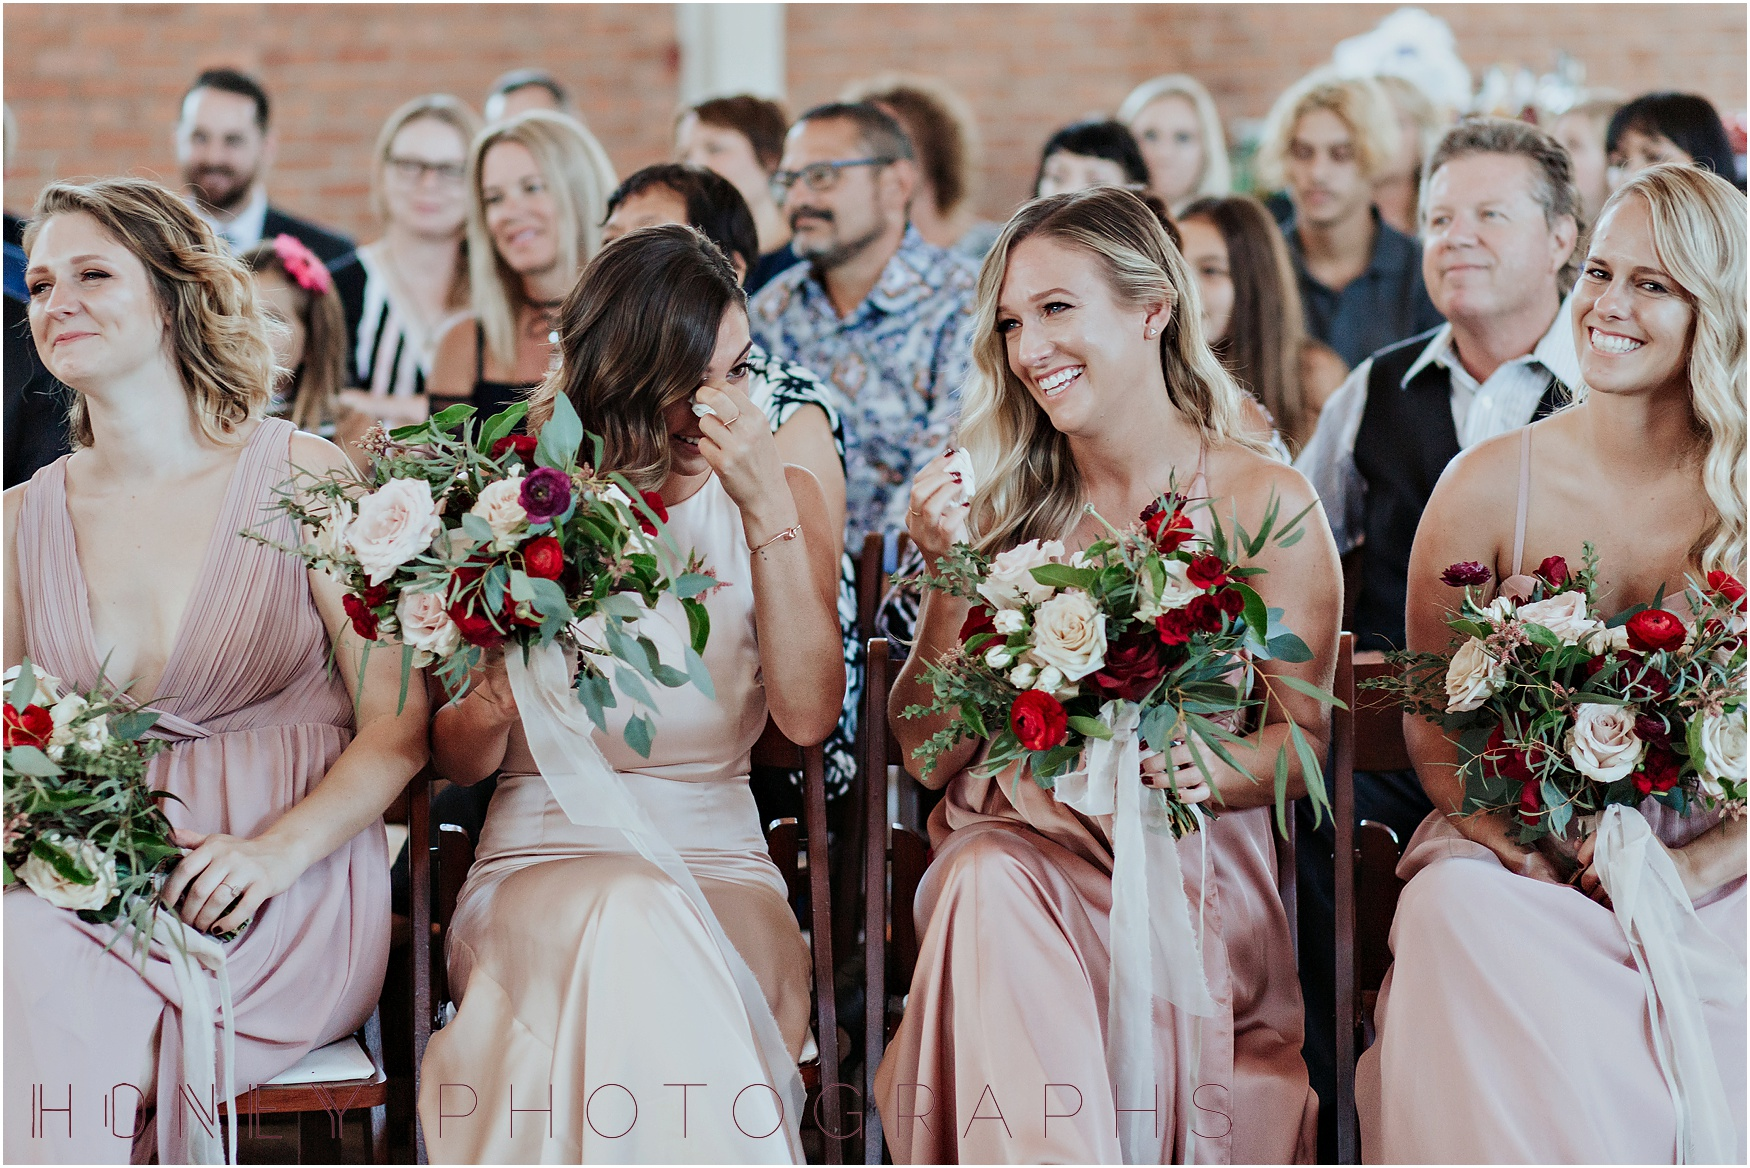 bricksandiegomilitaryurbanwedding0016.JPG